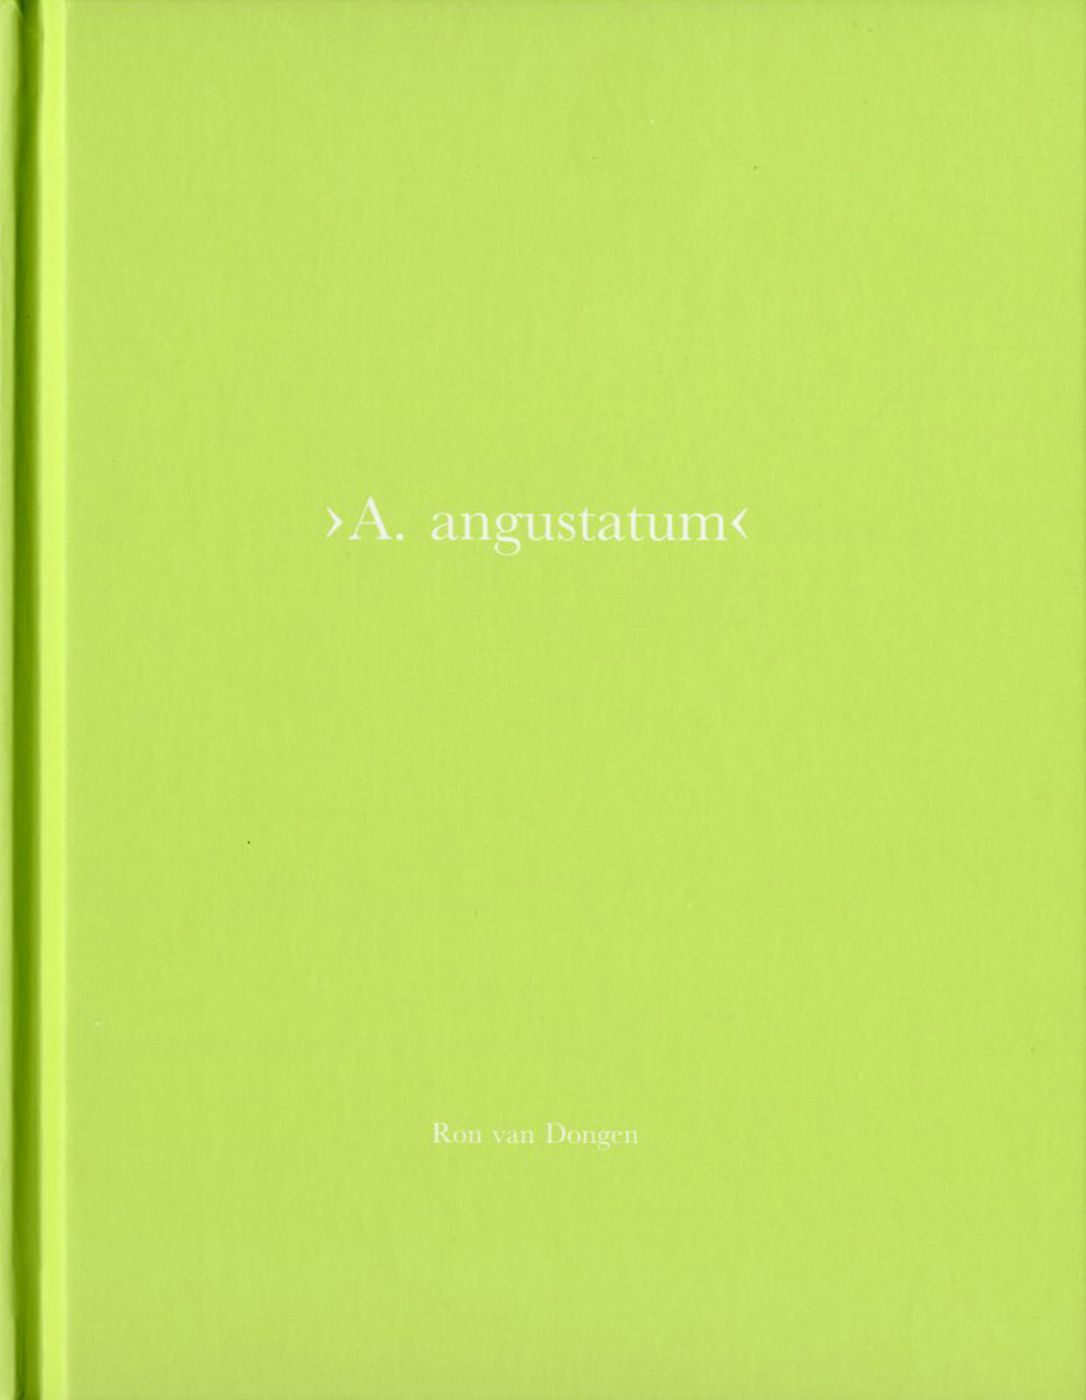 Ron van Dongen: A. angustatum (One Picture Book #37), Limited Edition (with Print)